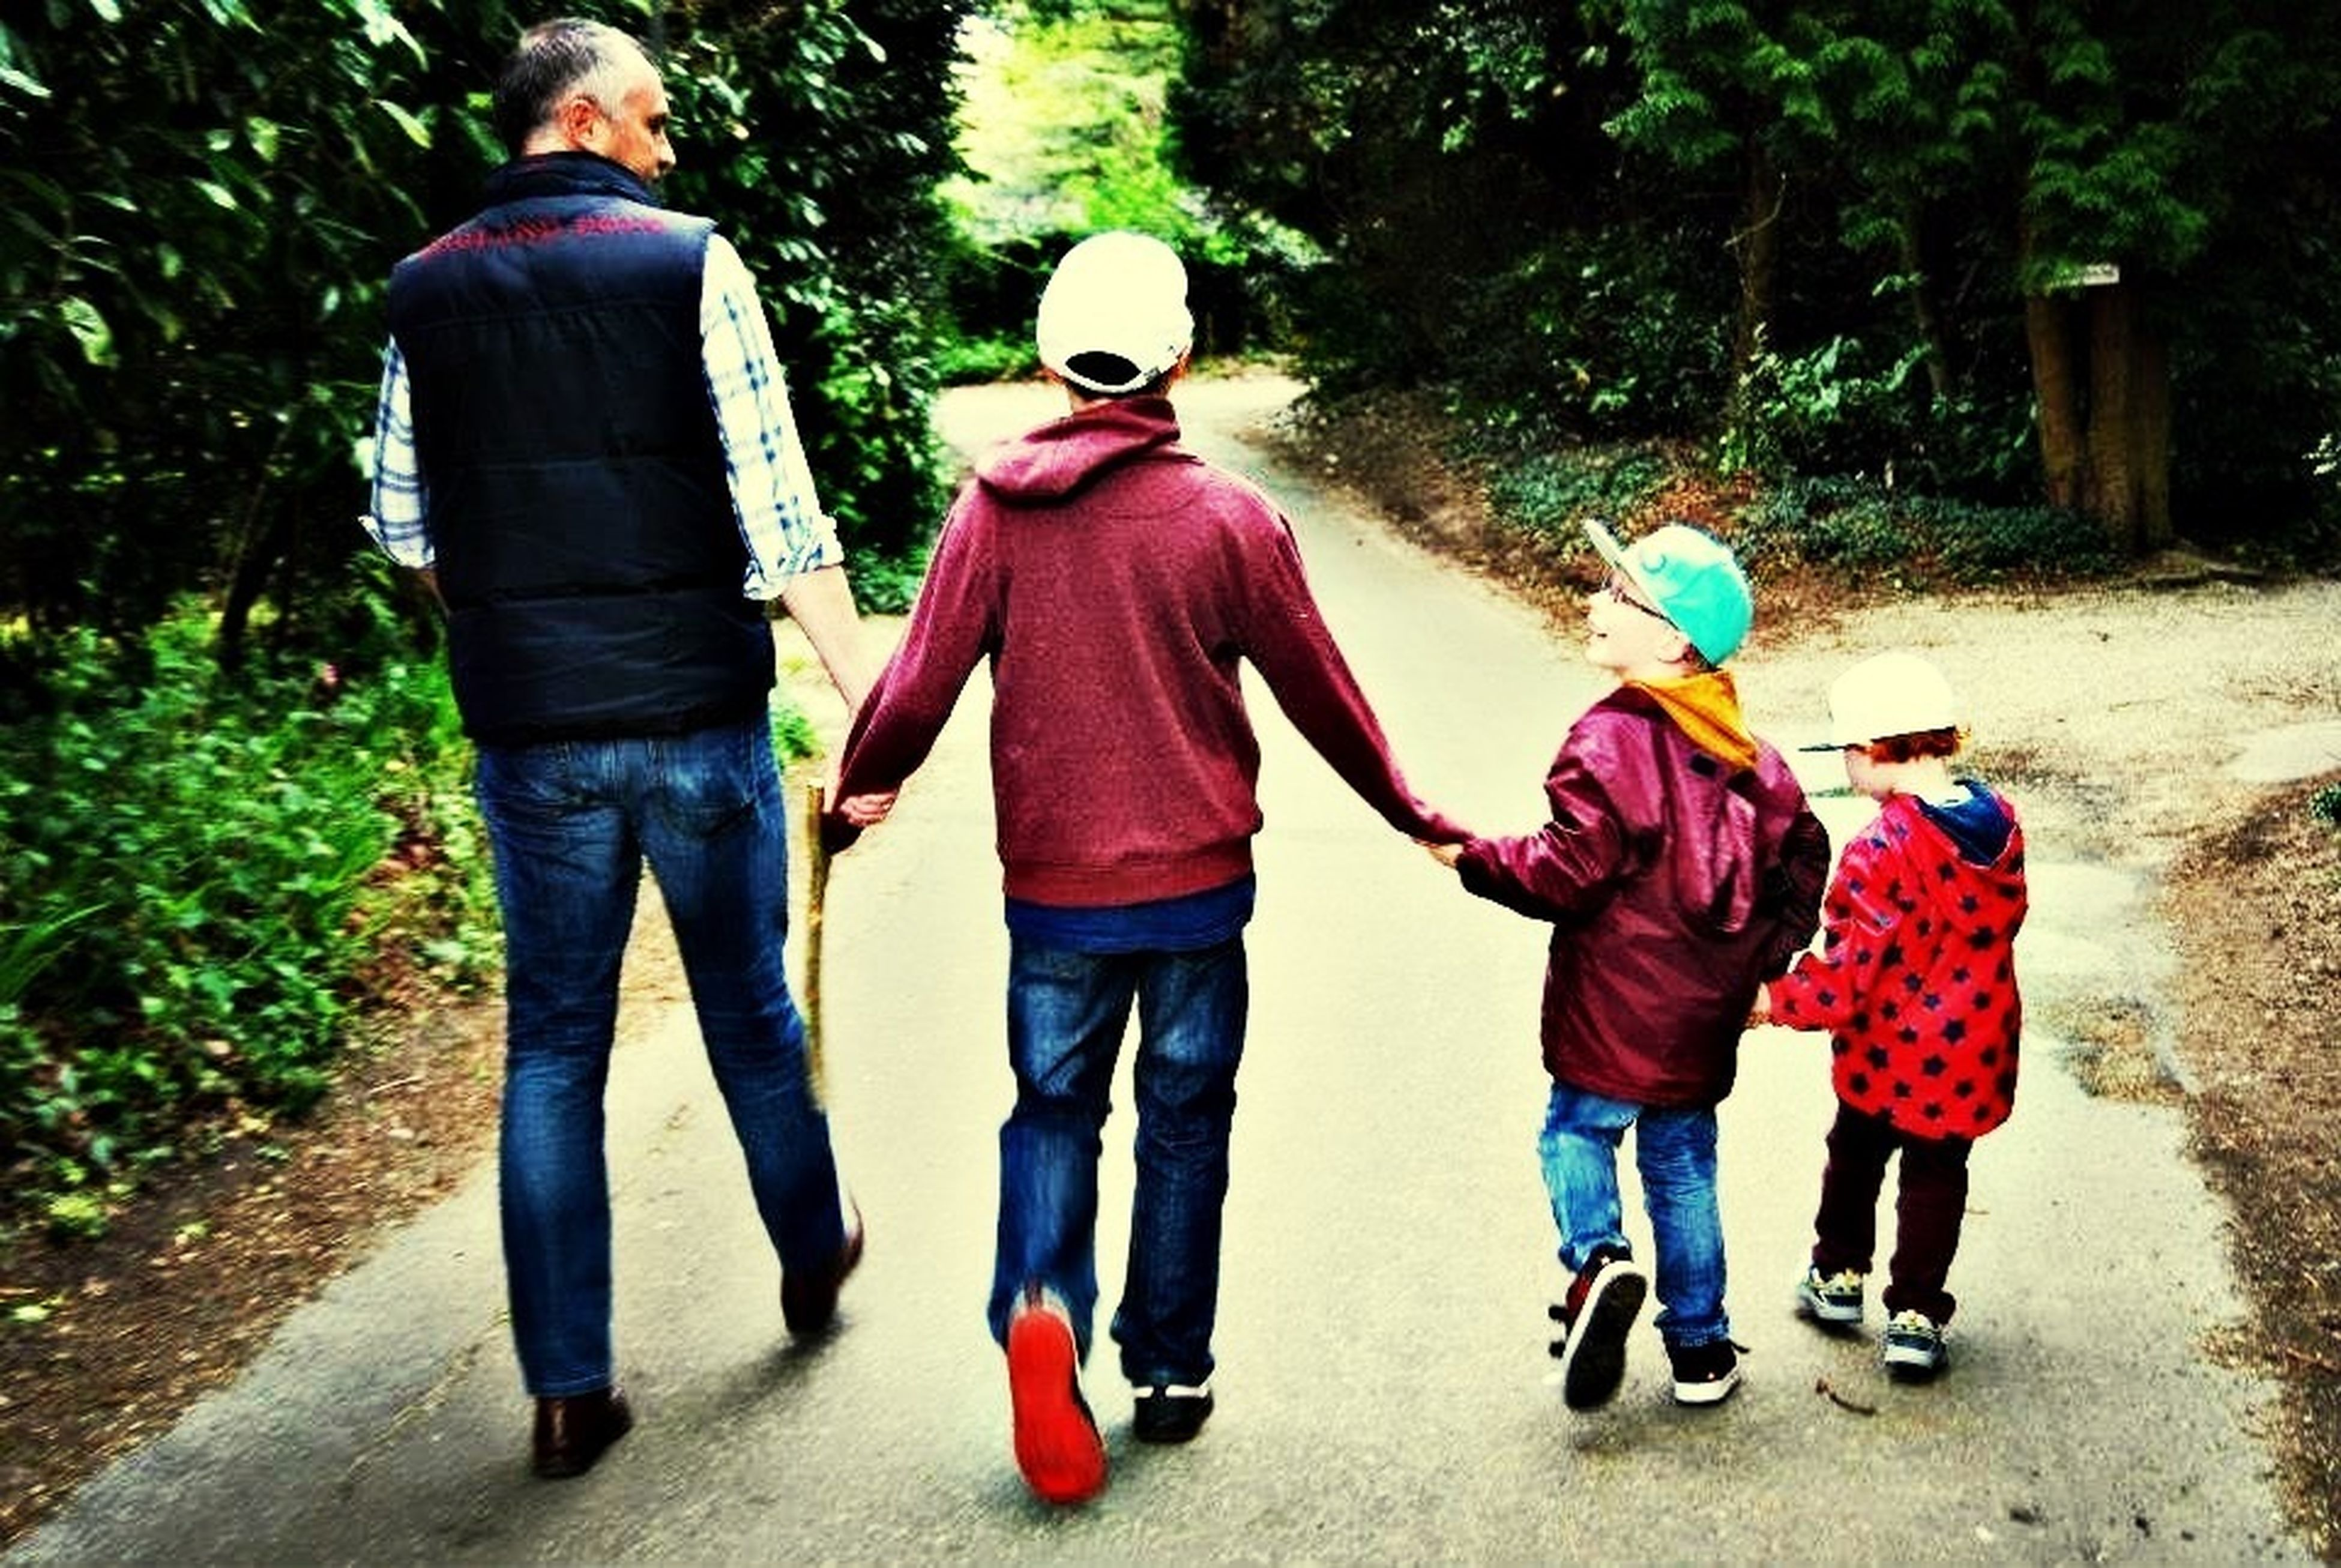 full length, togetherness, lifestyles, casual clothing, rear view, bonding, leisure activity, childhood, men, boys, love, walking, family, girls, street, family with one child, holding hands, friendship